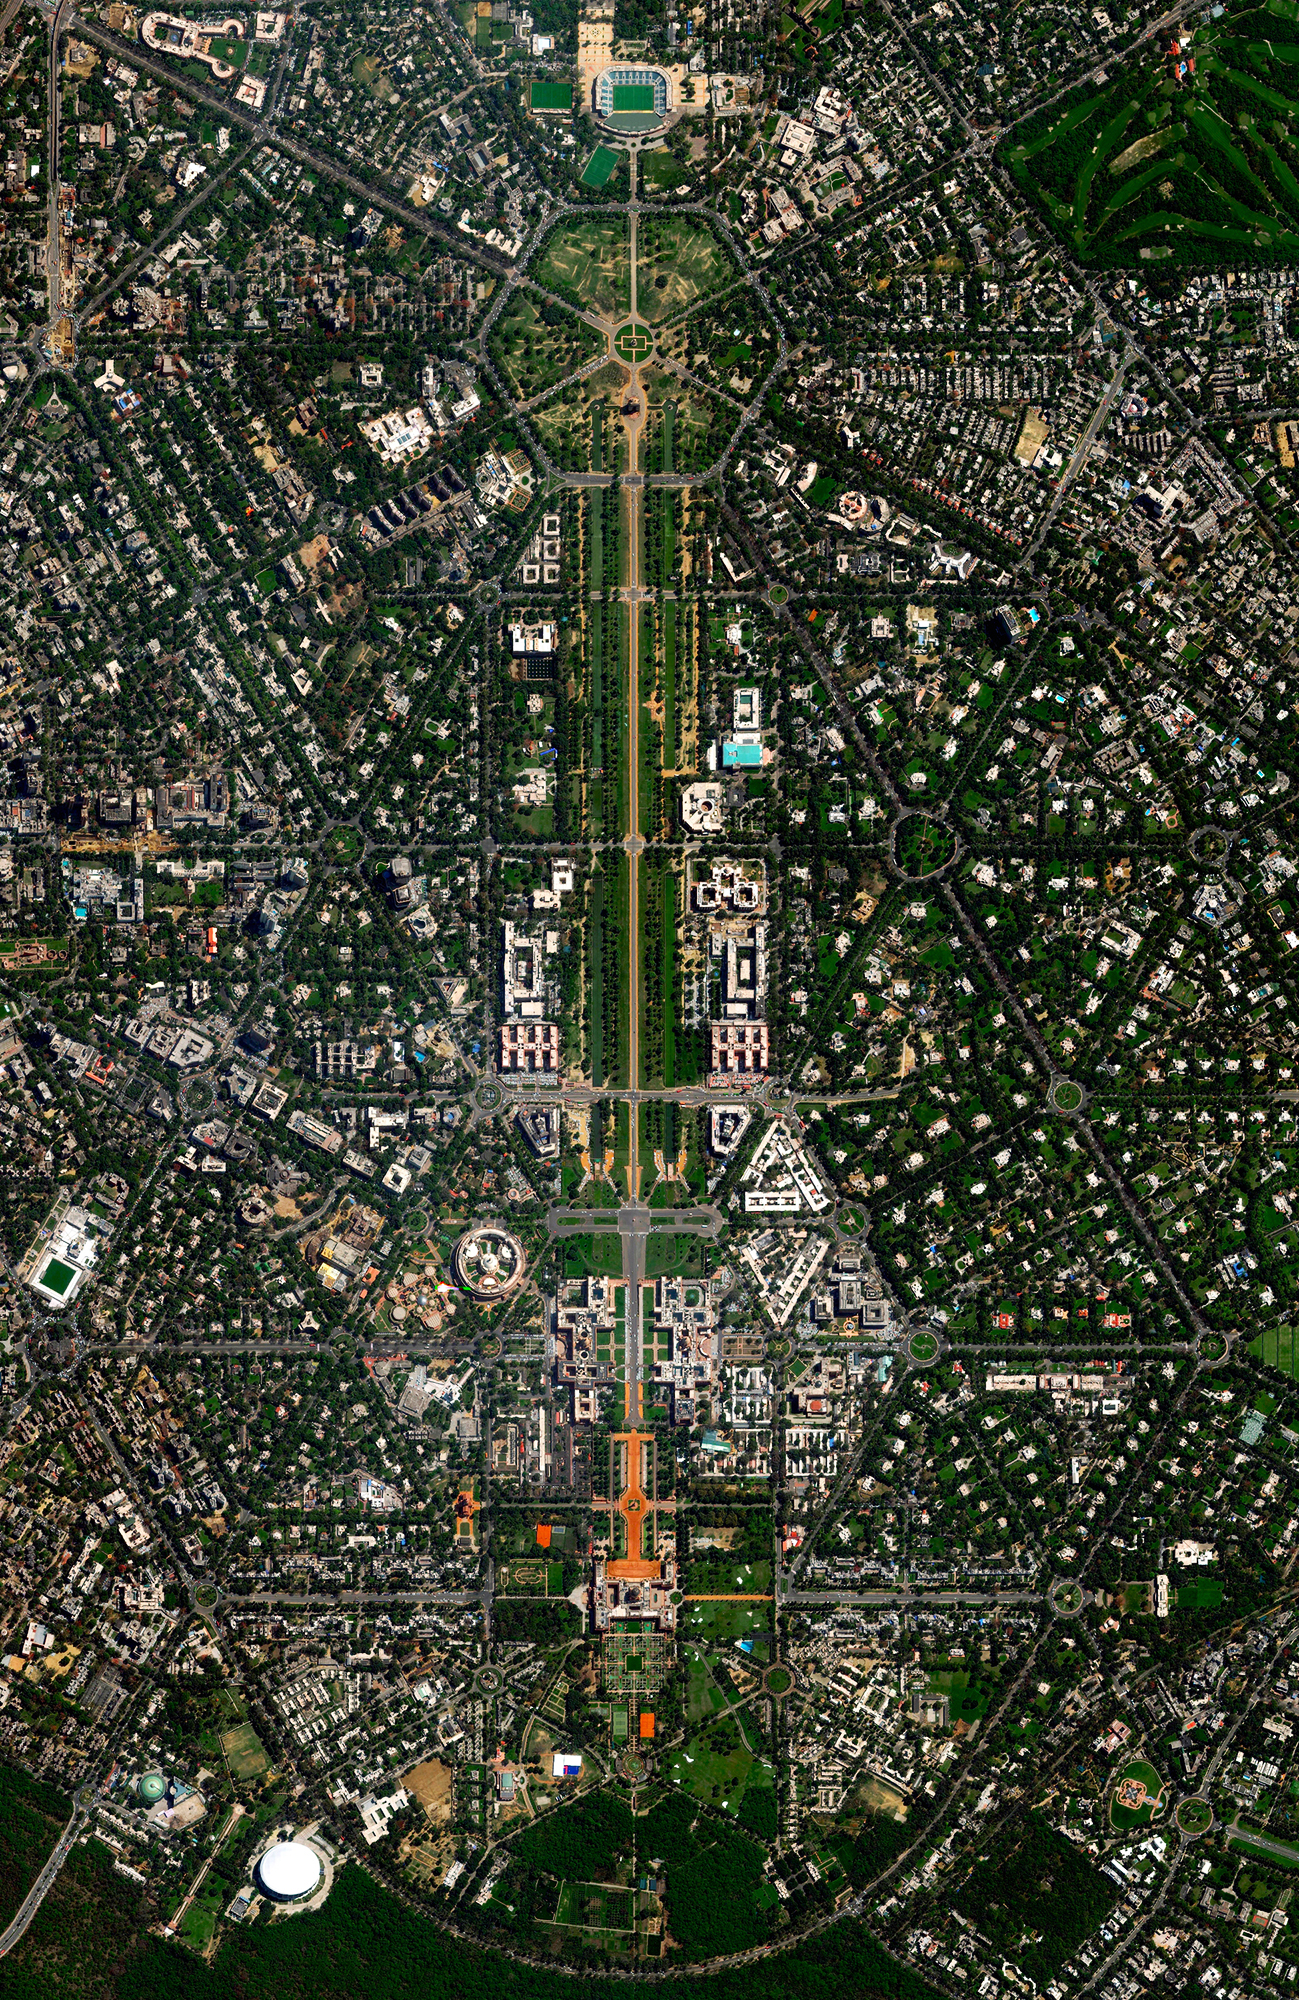 5/7/2017  New Delhi  Delhi, India  28.615593, 77.209023  New Delhi serves as the capital of India and is home to more than 21 million residents in its metro area. Officially inaugurated in February 1931, the city was planned by British architects Sir Edwin Lutyens and Sir Herbert Baker. Their design centered around two promenades - the Rajpath and the Janpath - that run perpendicular to each other and intersect here at center.  Source imagery: DigitalGlobe